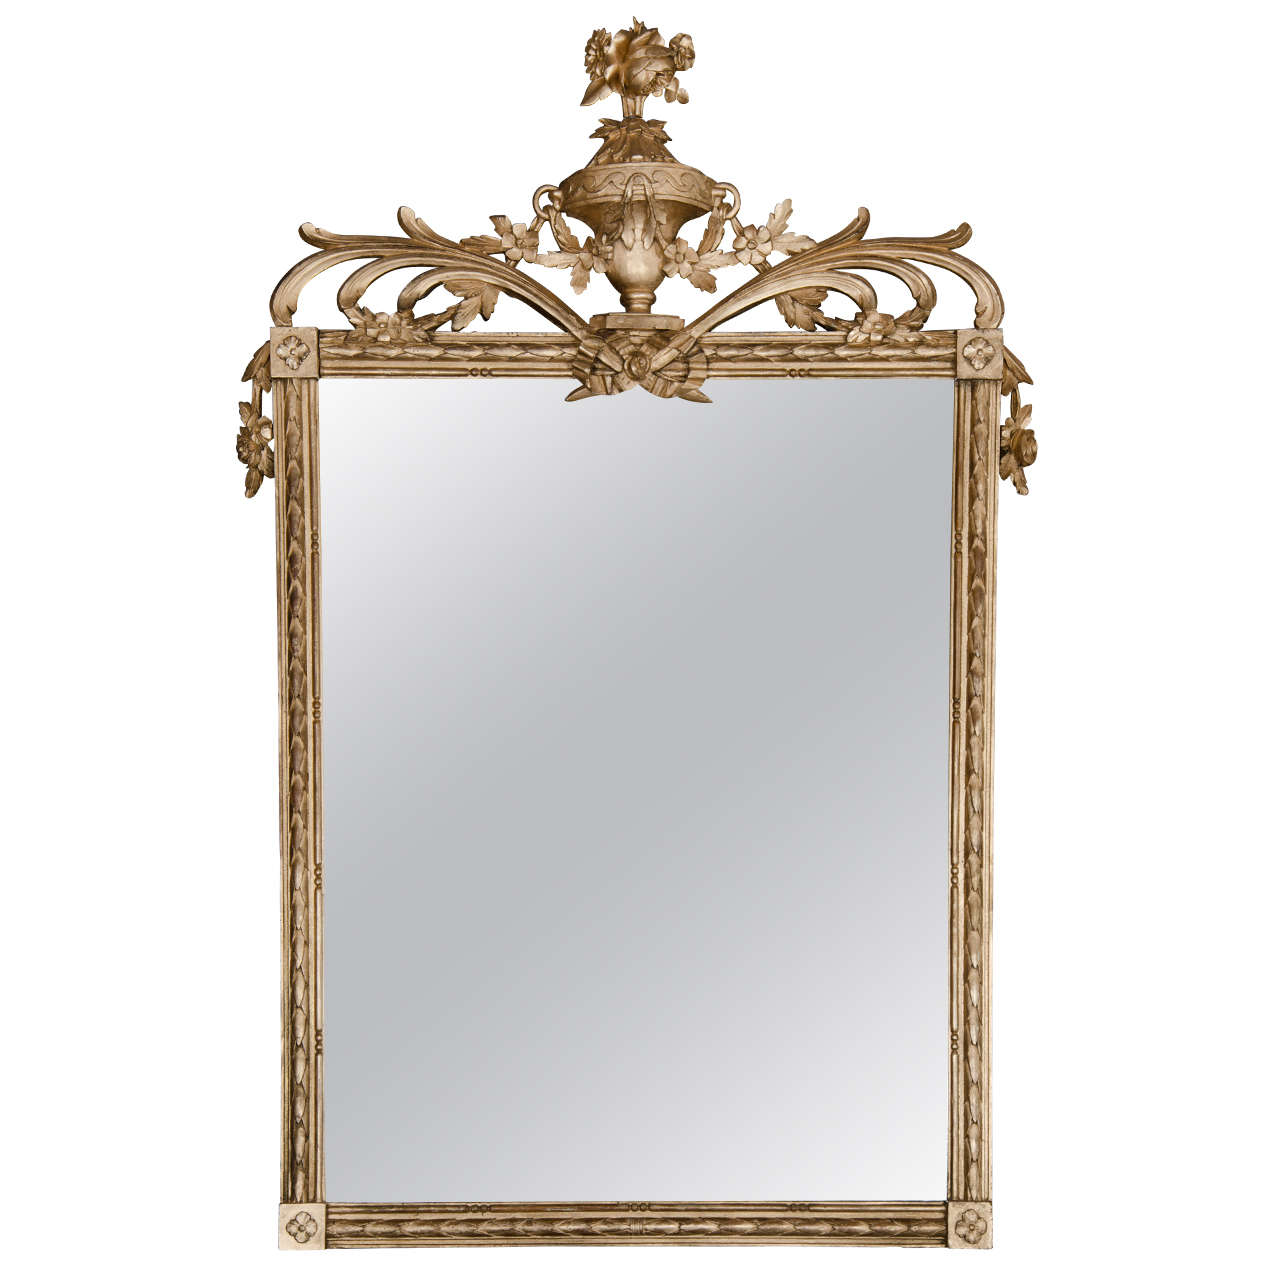 Antique regency style gilt mirror at 1stdibs for Vintage style mirrors